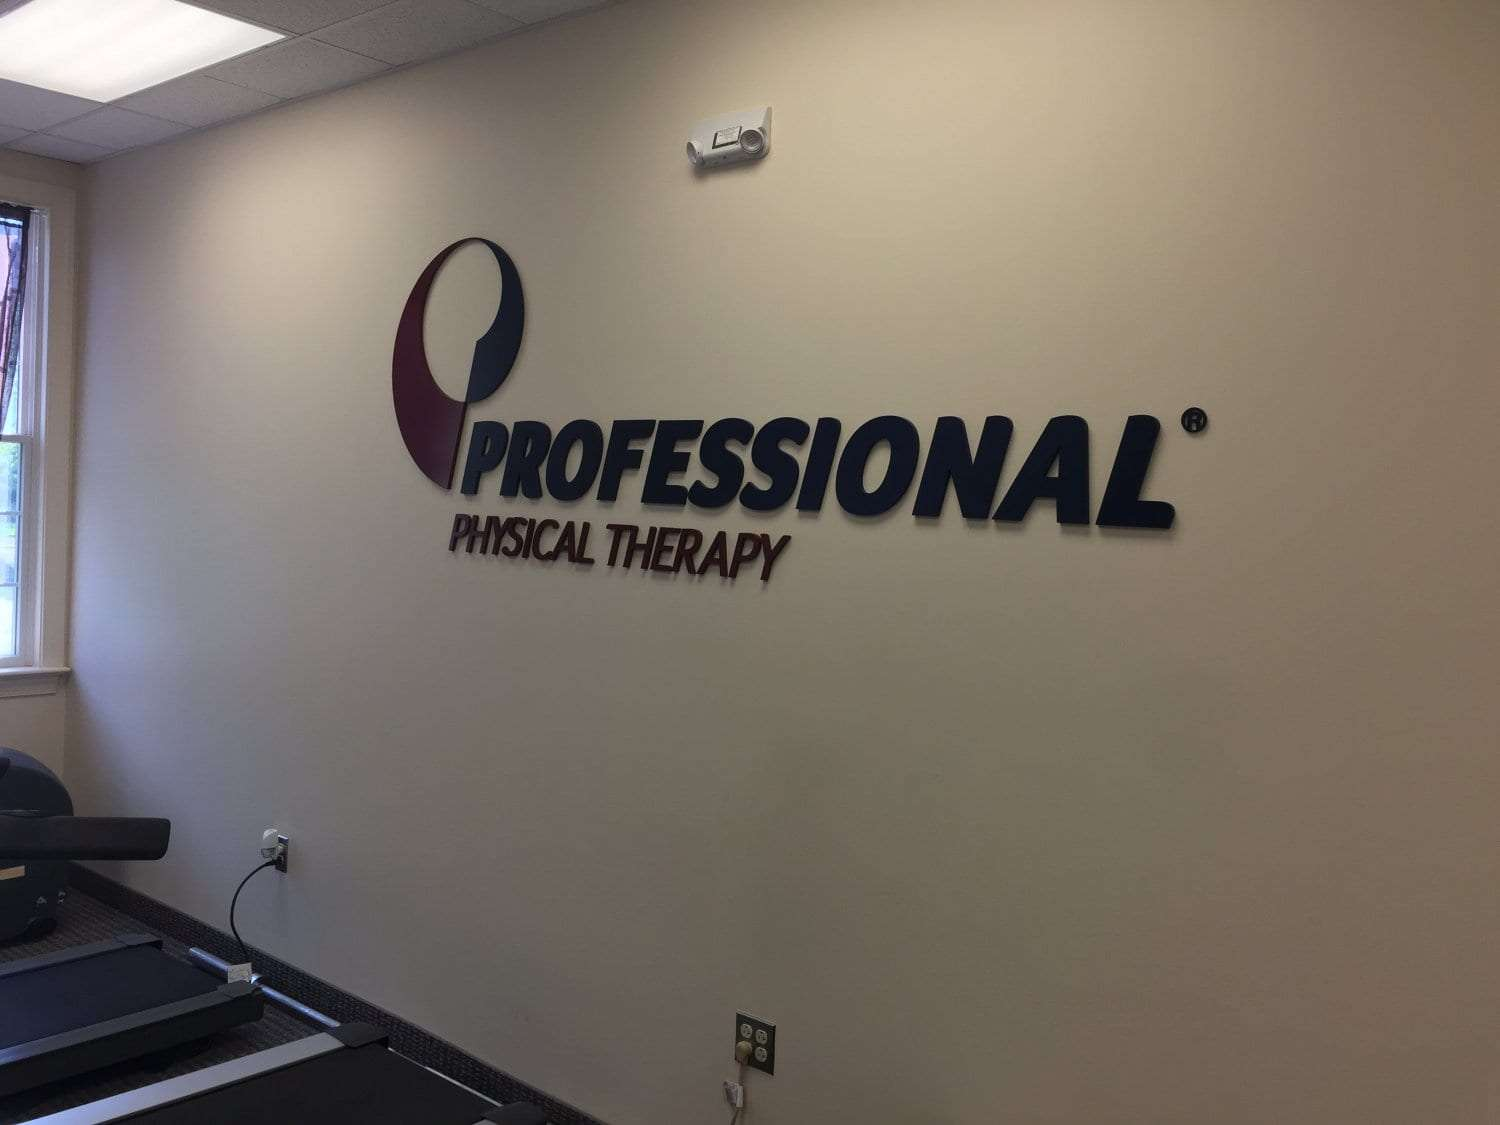 Here is an image of the sign for our clinic on the wall. The sign reads